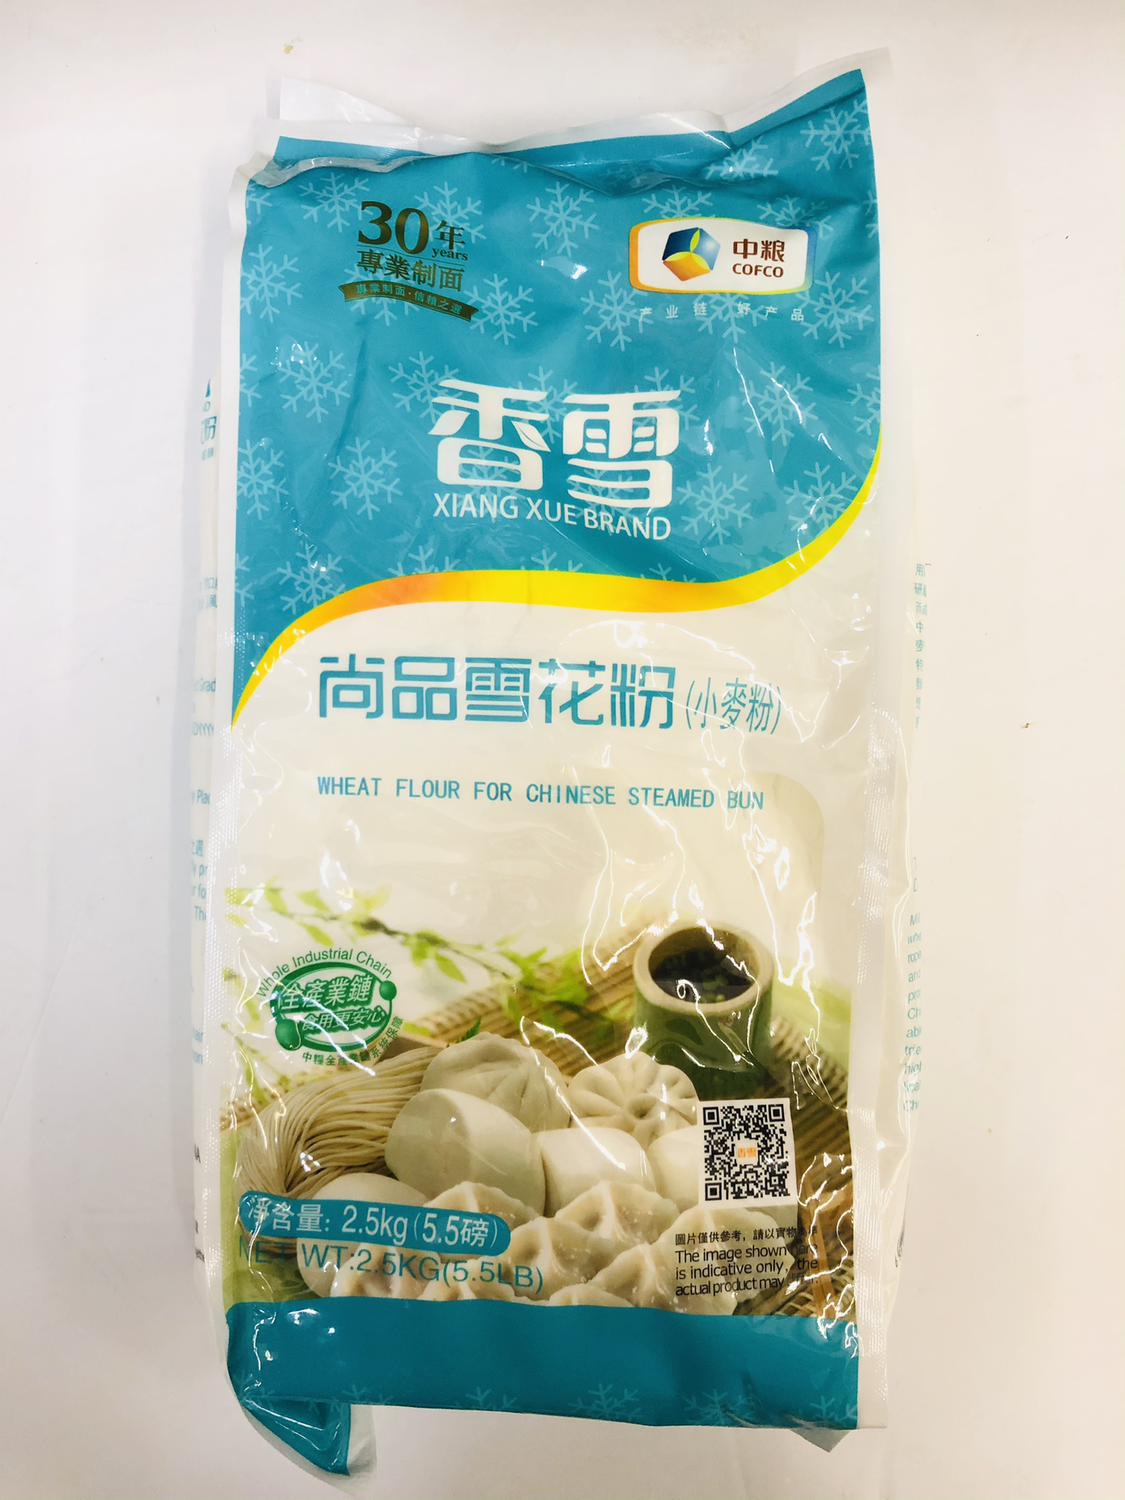 中粮 香雪 尚品雪花粉(小麦粉) COFCO XIANG XUE BRAND Wheat Flour for Chinese Steamed Bun 2.5kg(5.5lb)